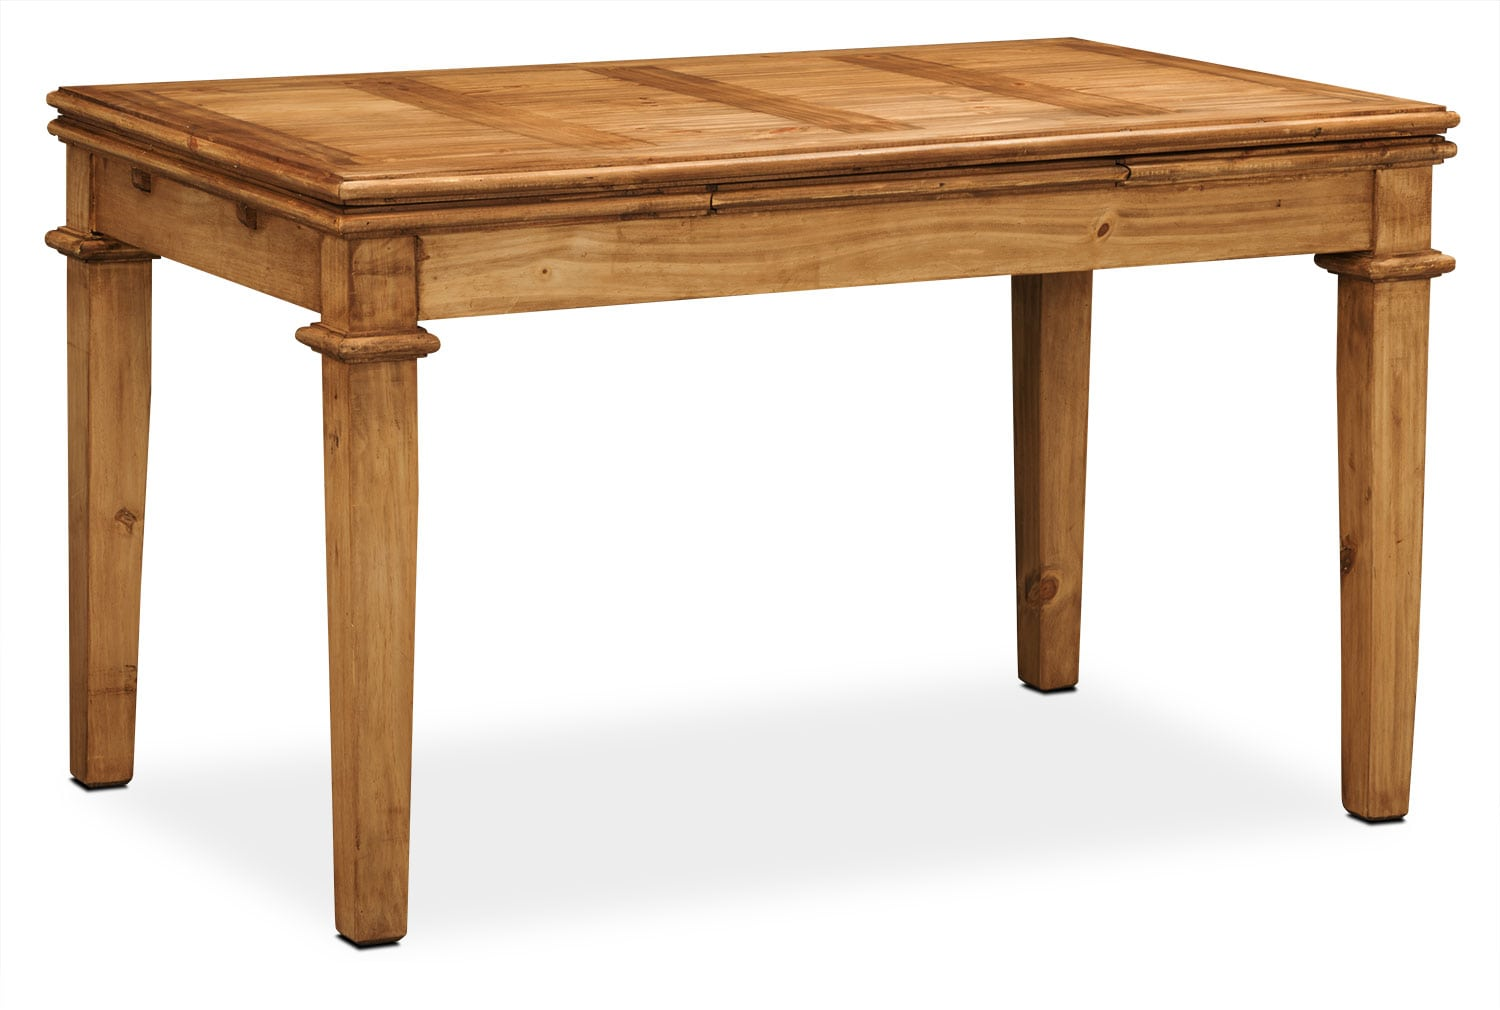 Dining Room Furniture - Santa Fe Rusticos Solid Pine Dining Table